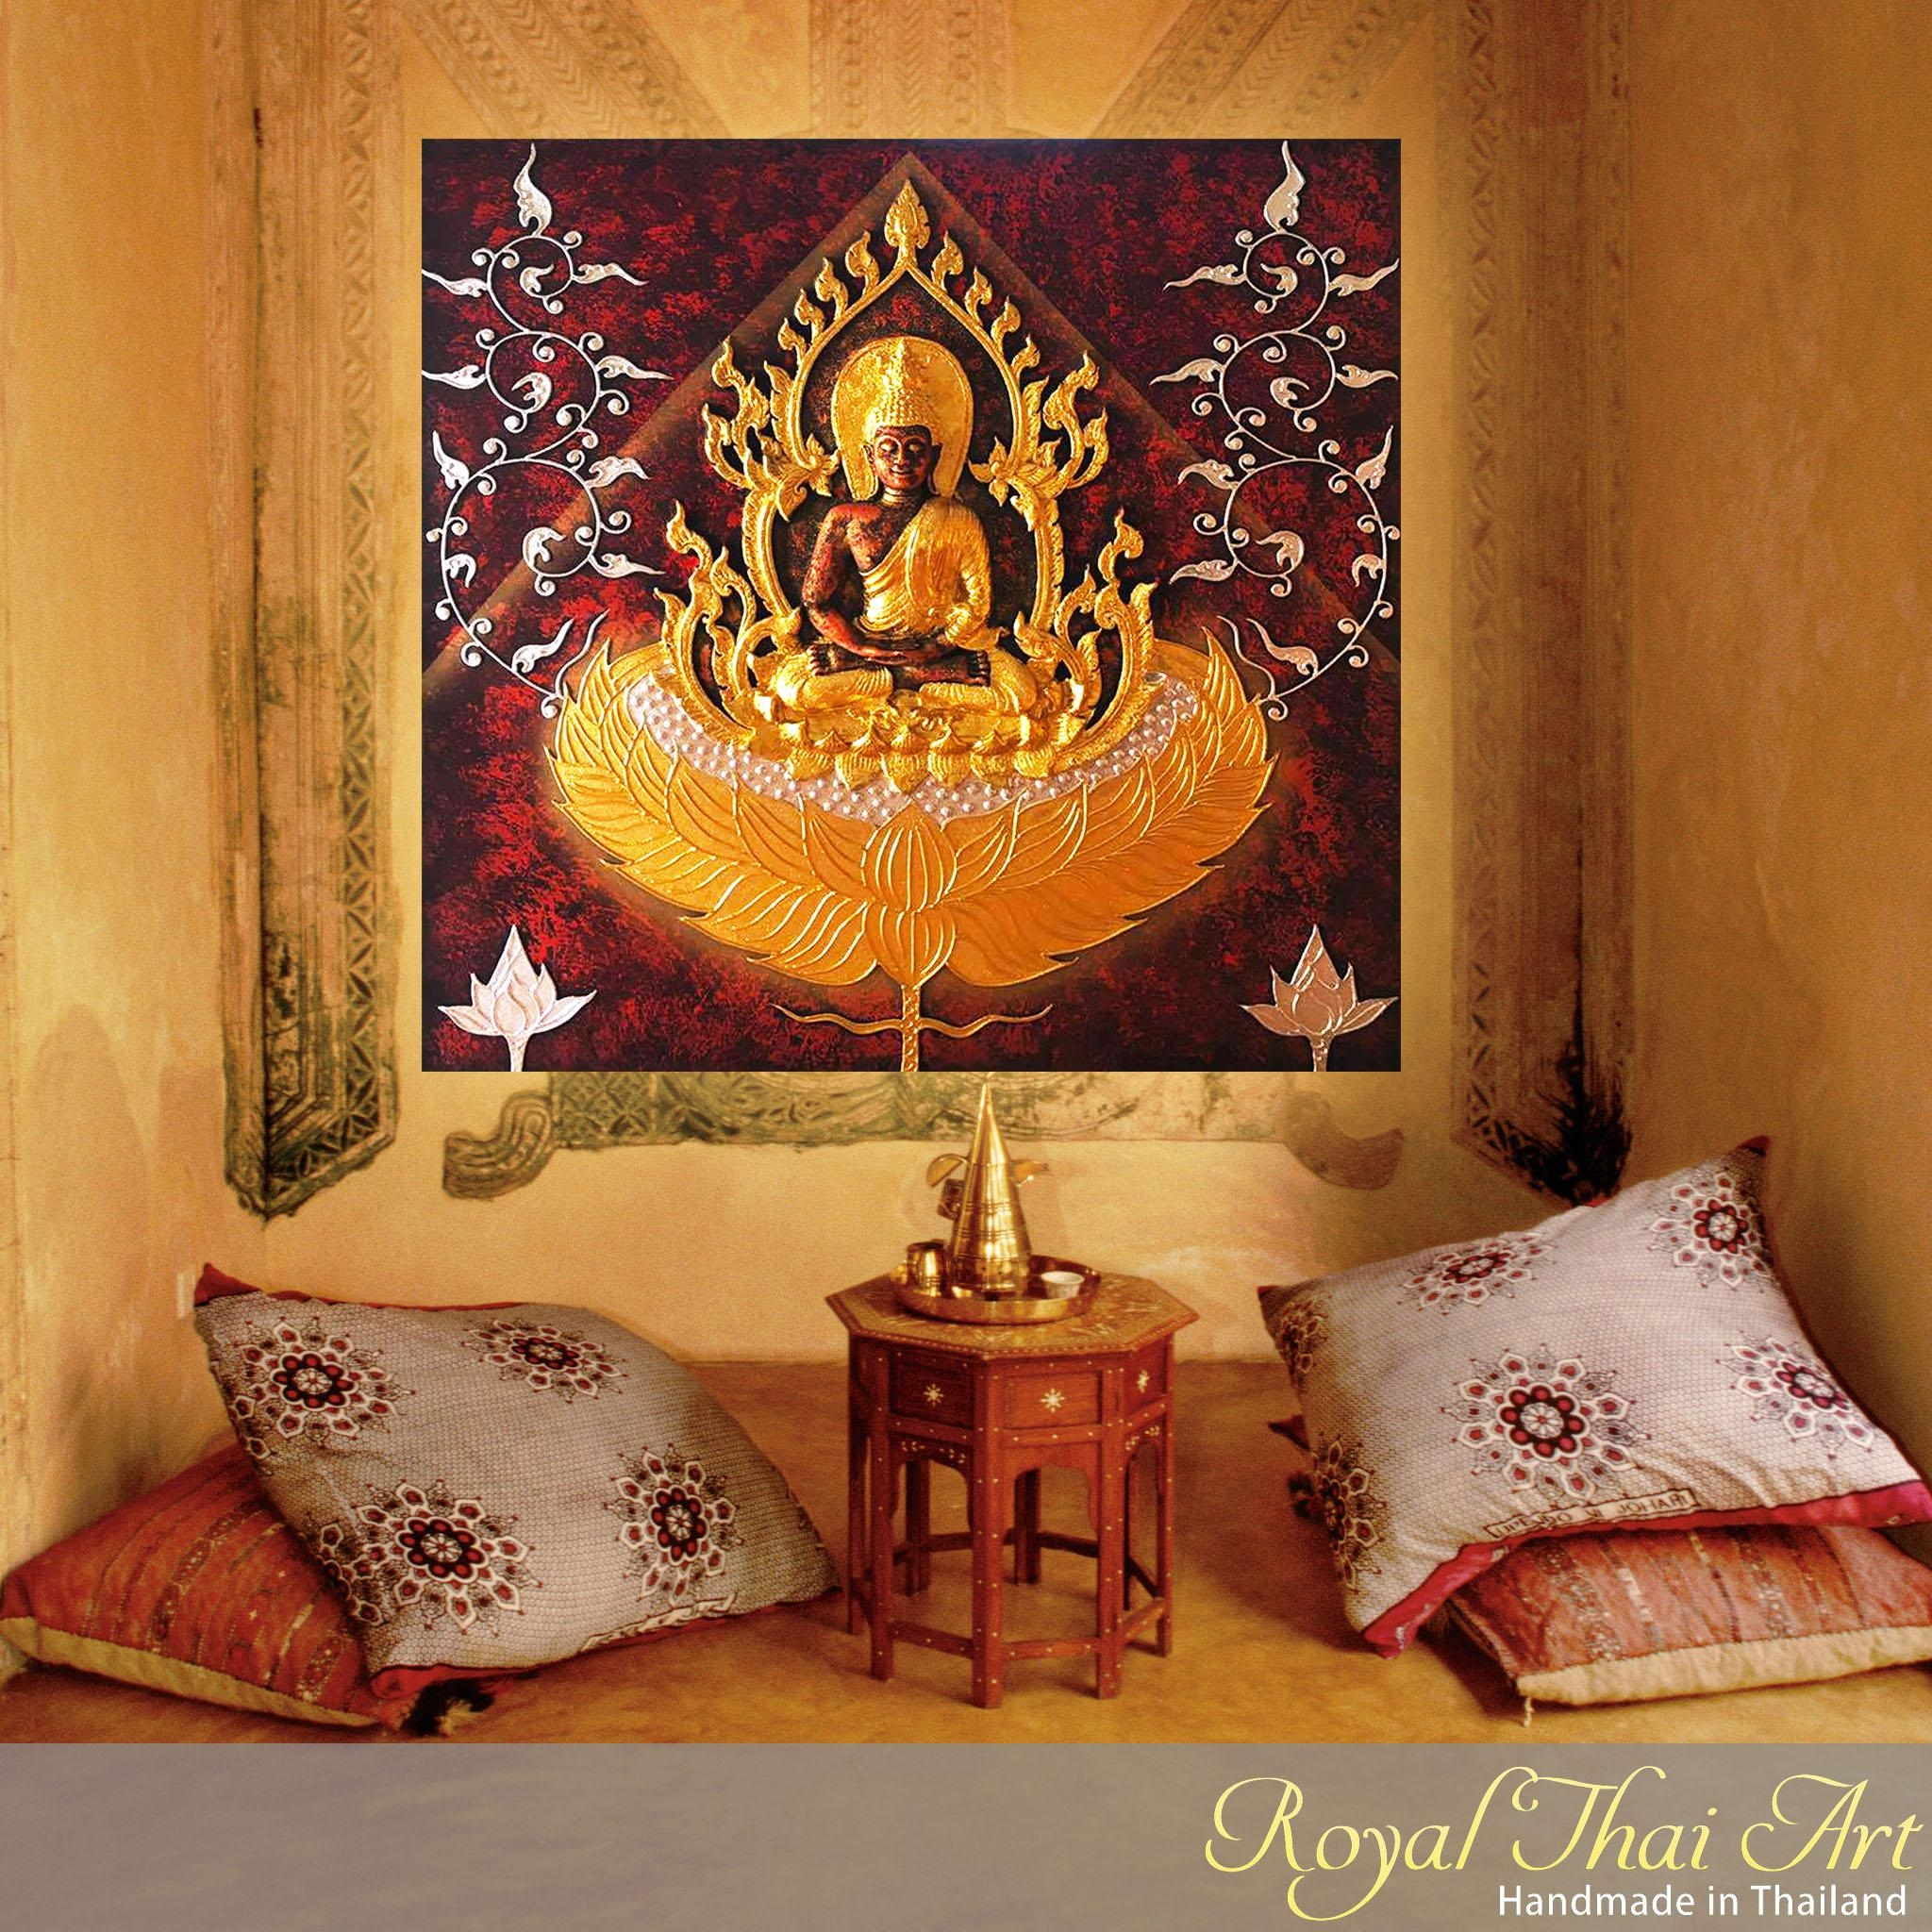 Buddha Painting 3D Handmade Gold Statue | Royal Thai Art Throughout Buddha Wood Wall Art (View 17 of 20)